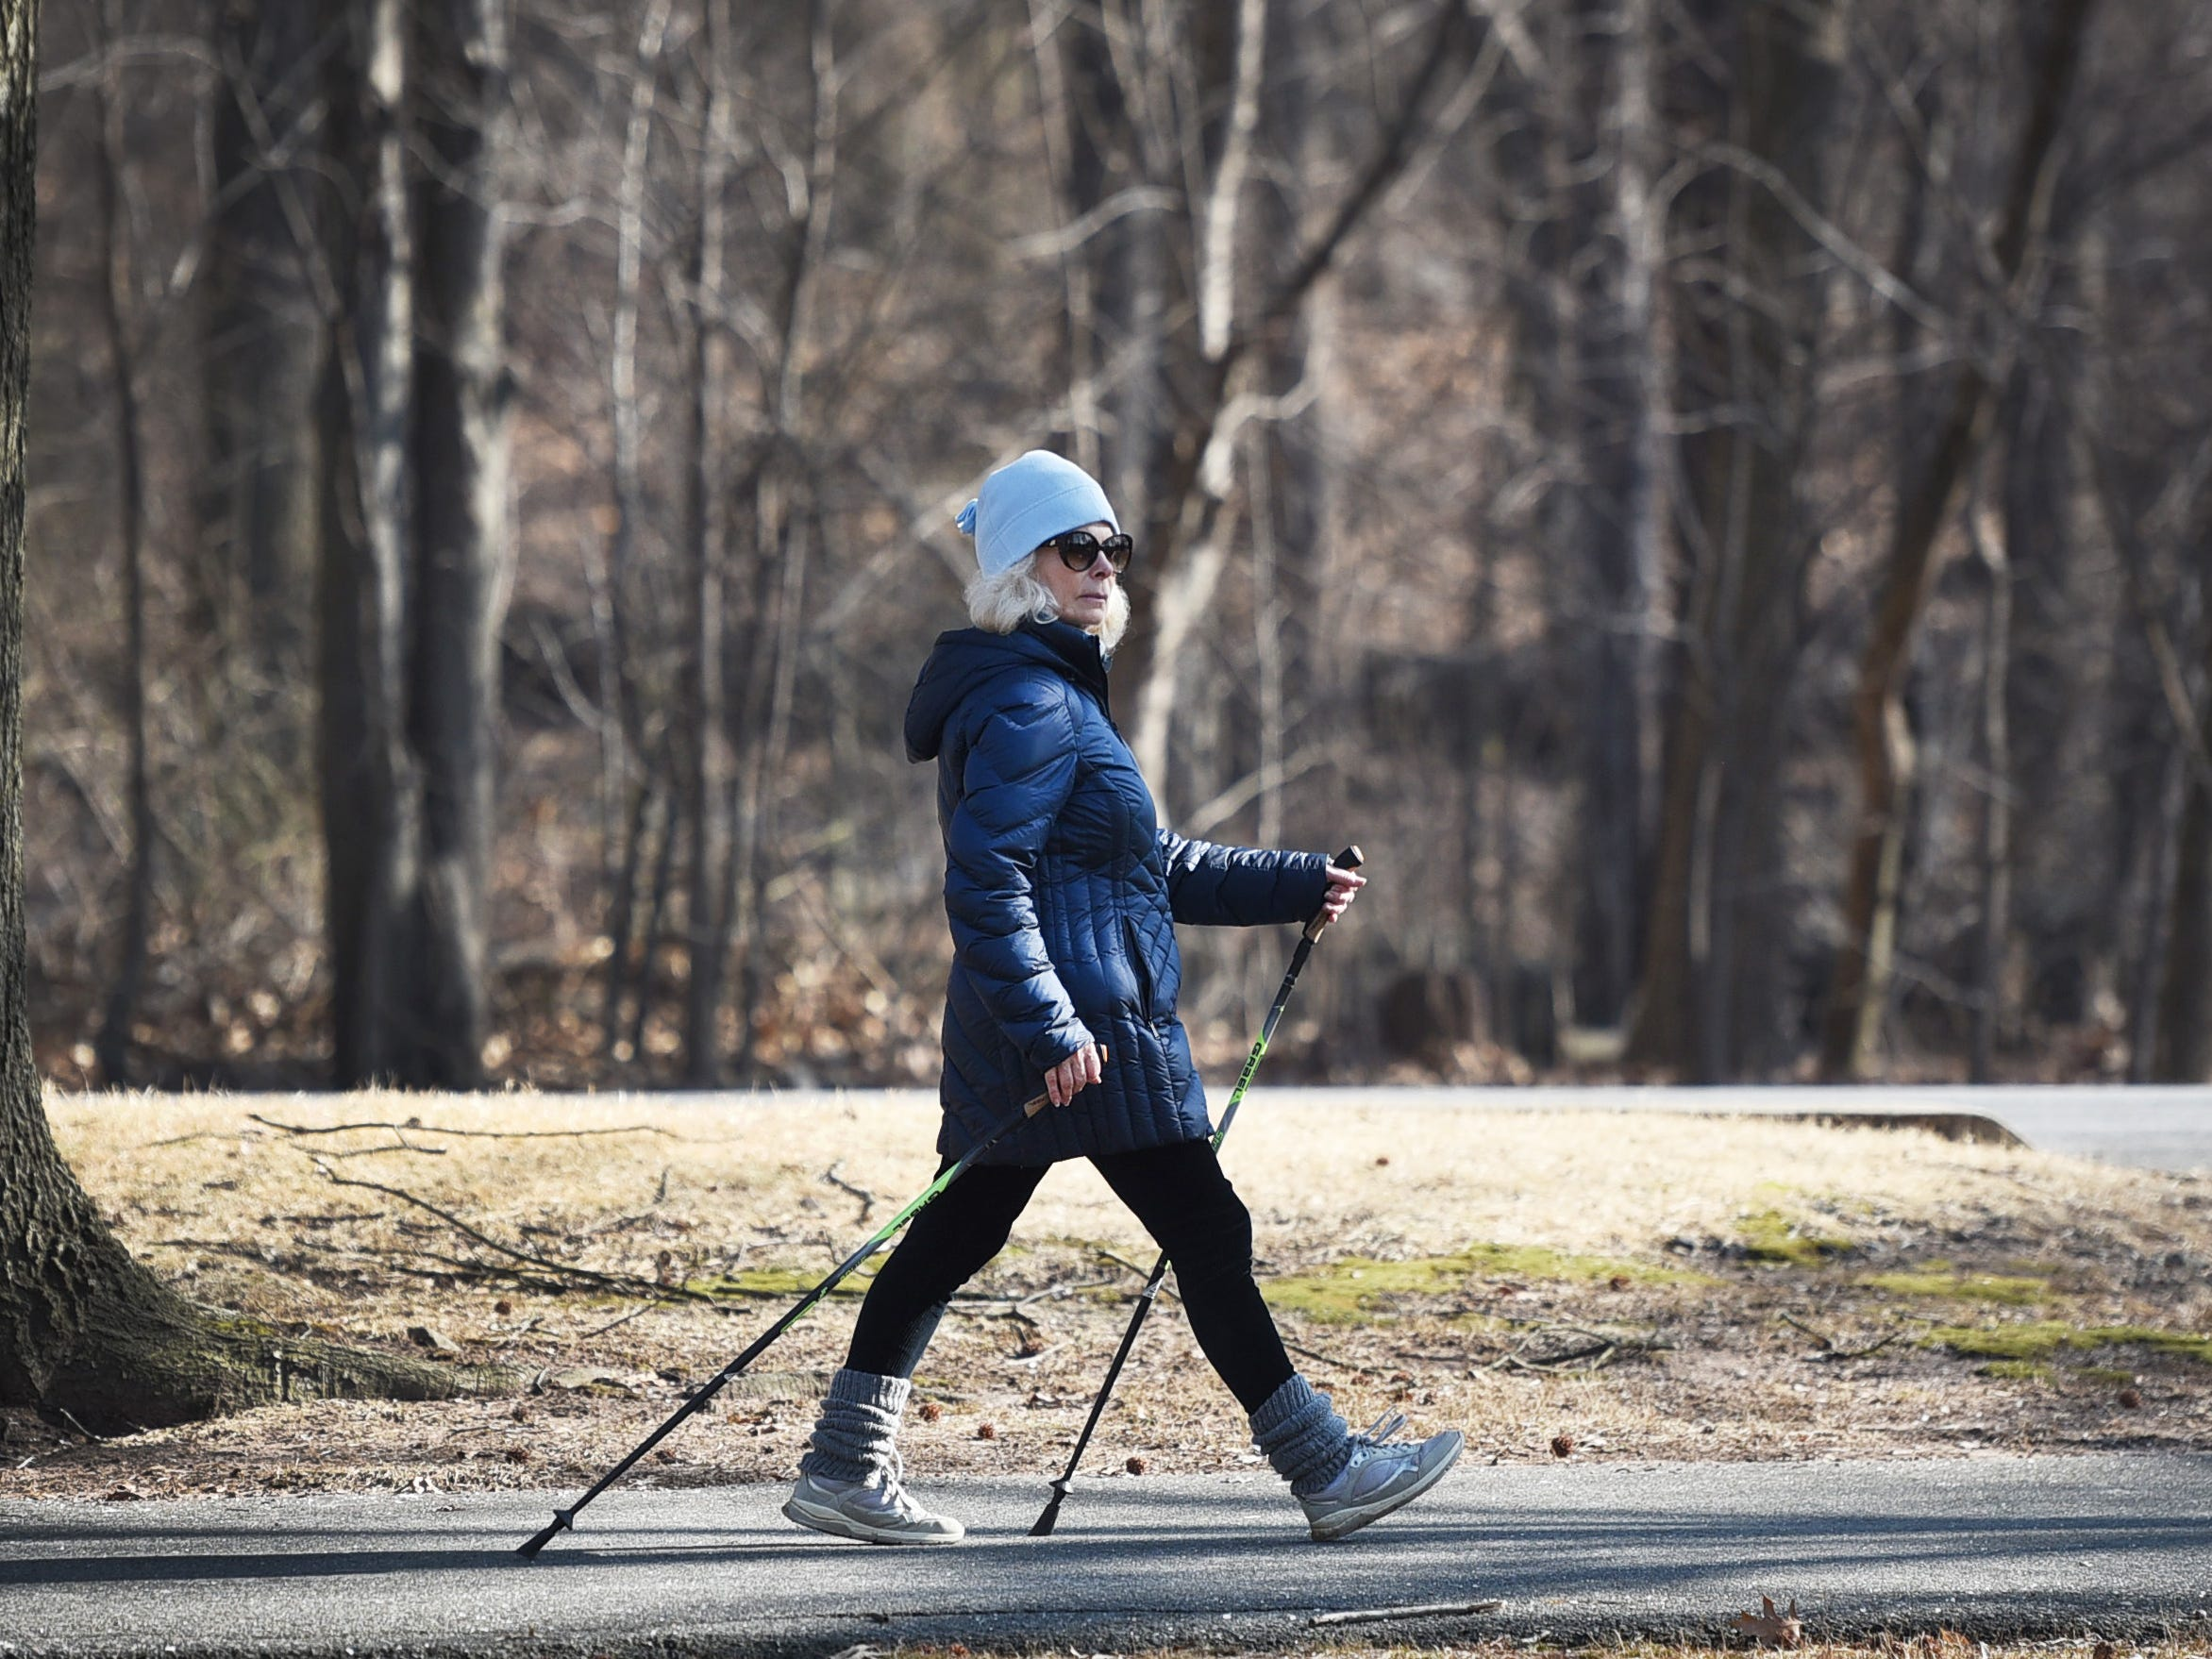 A woman walks with with two sticks at Van Saun County Park in Paramus on 02/05/19.